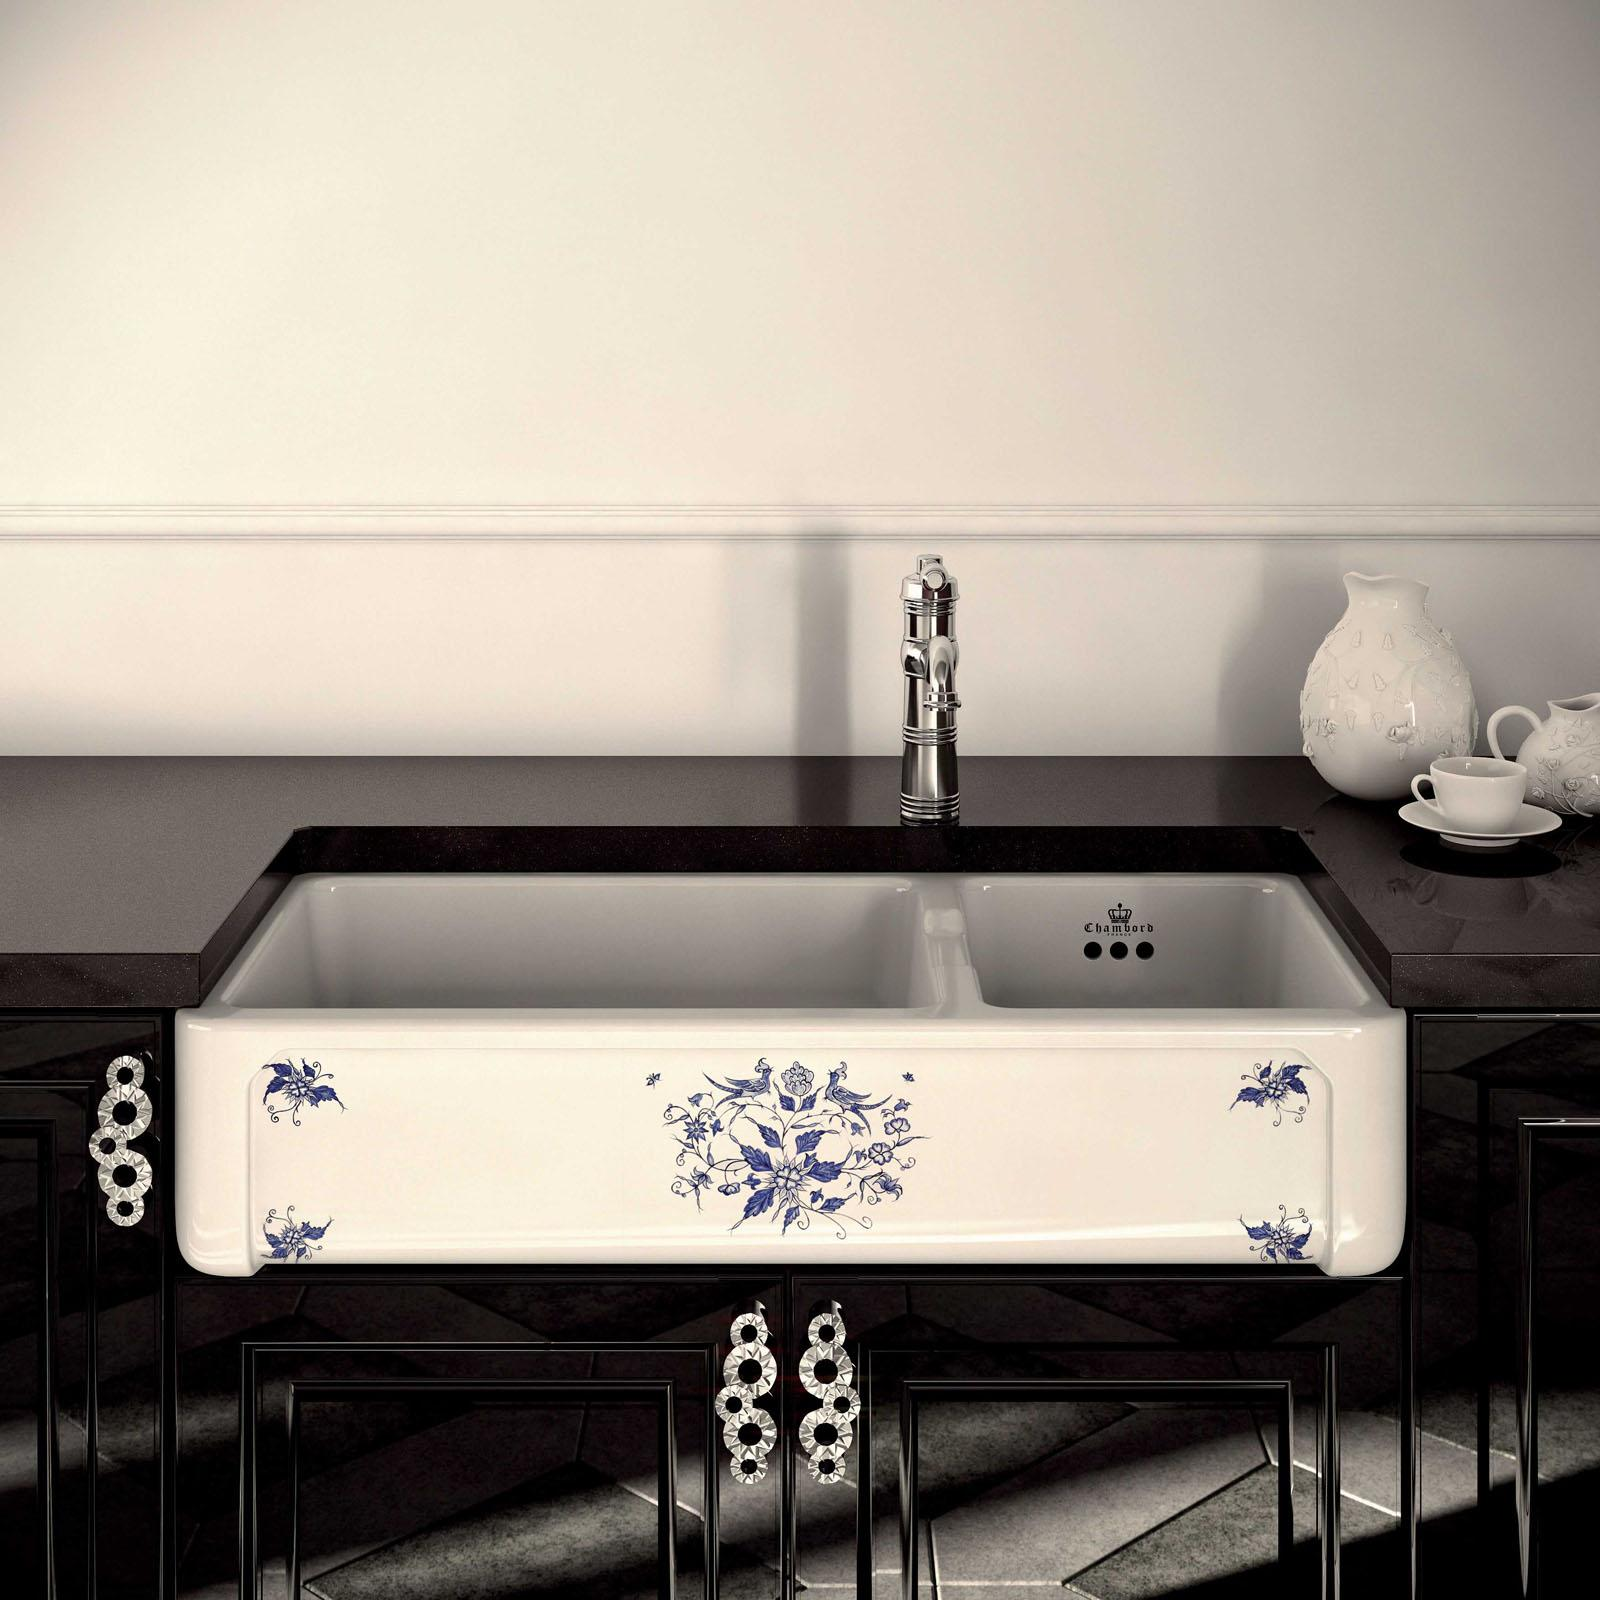 High-quality sink Henri III Moustiers - one and a half bowl, decorated ceramic - ambience